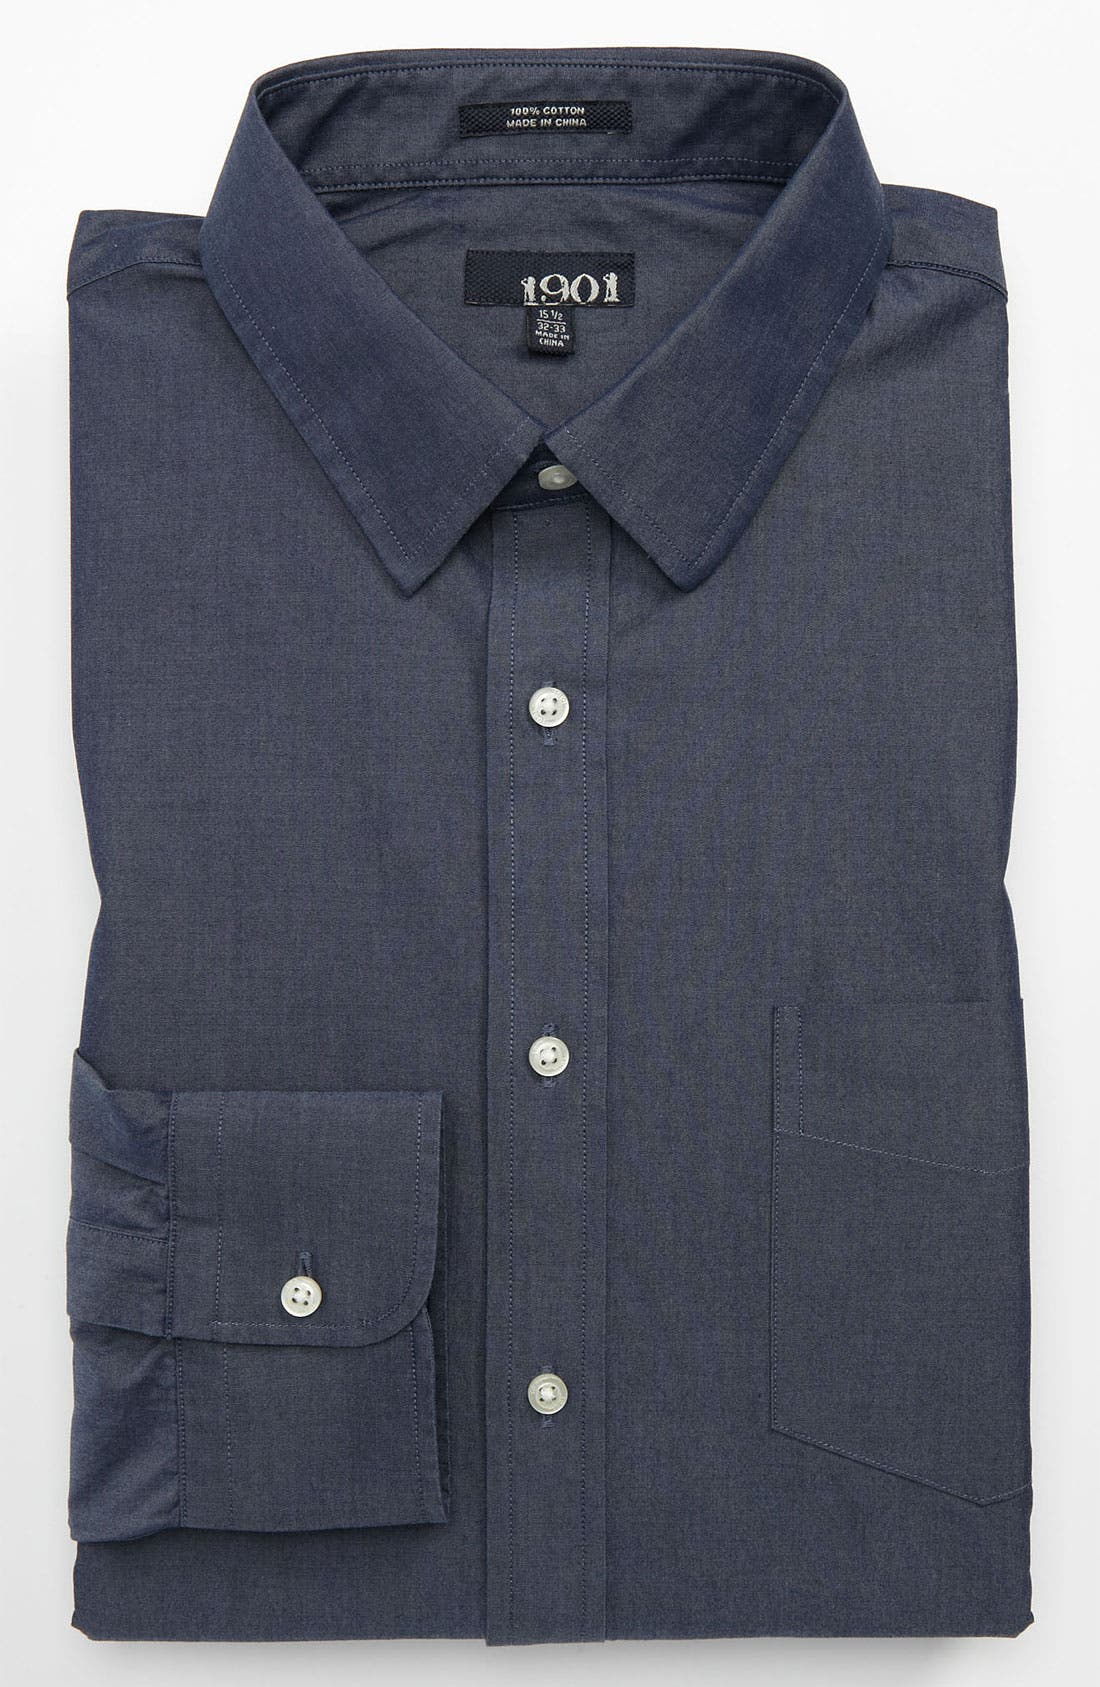 Alternate Image 1 Selected - 1901 Trim Fit Dress Shirt